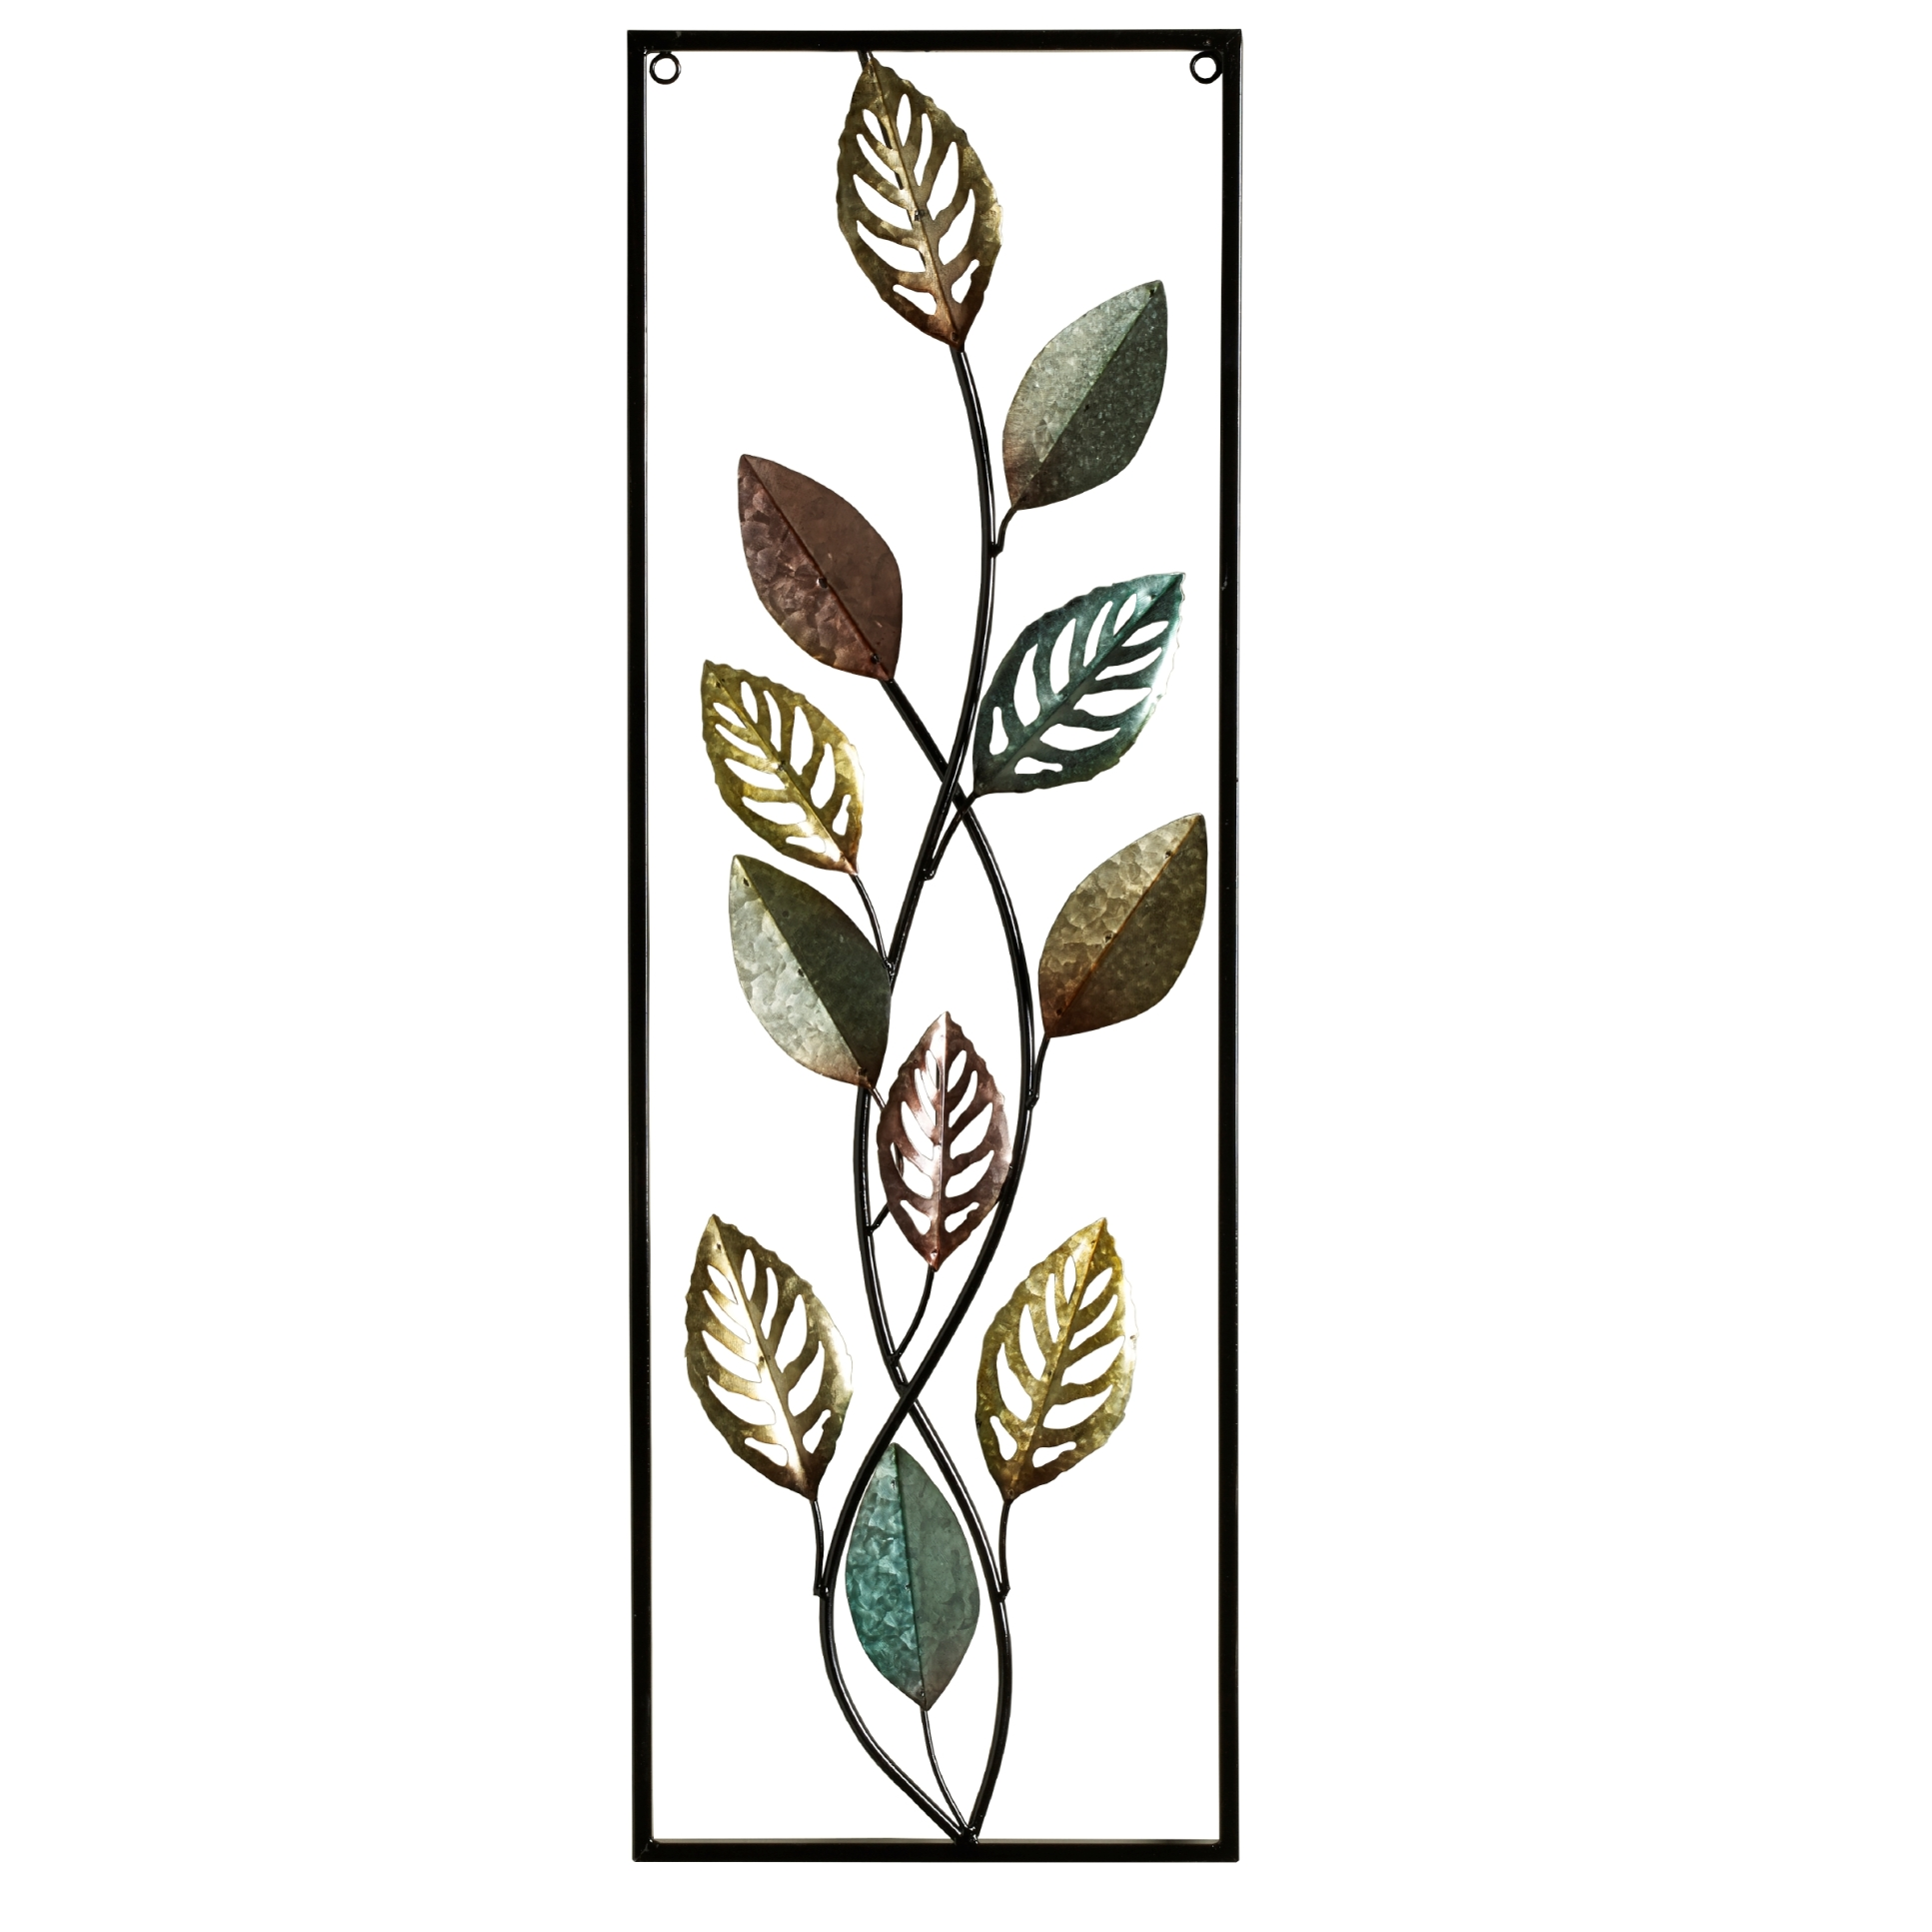 Leaf Metal Wall Art Elements Metal Gold Leaf Wall Decor